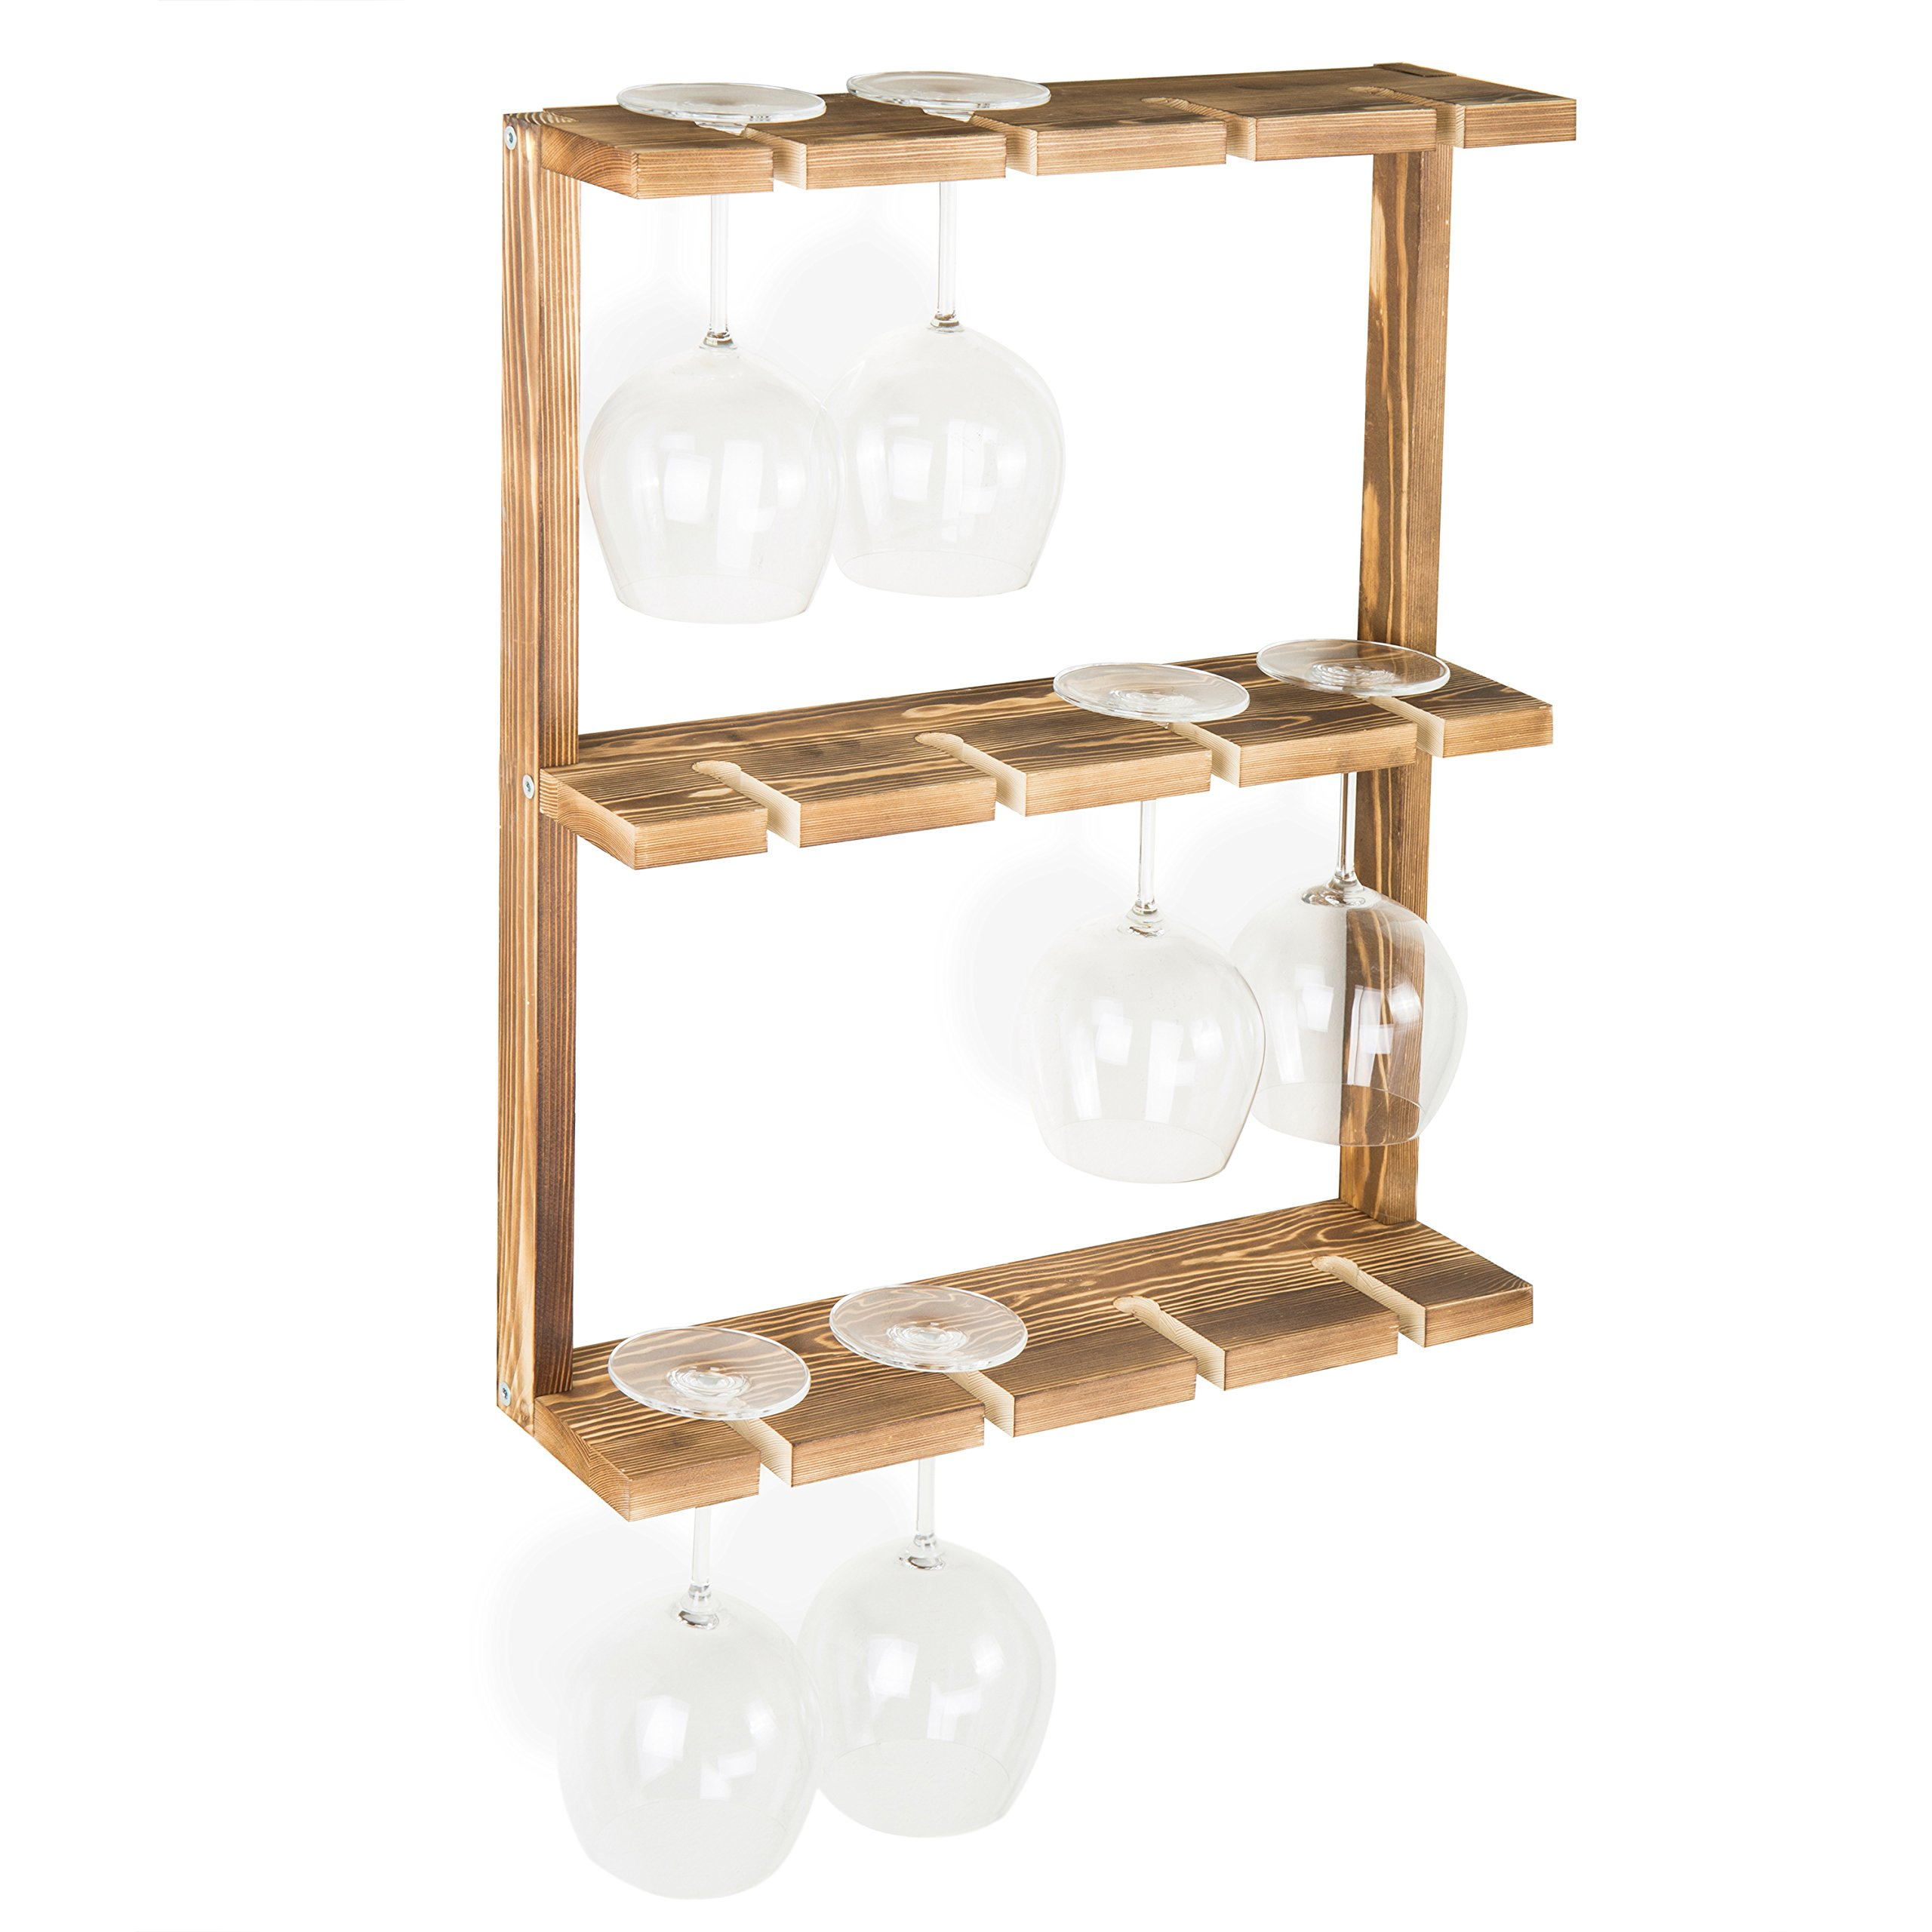 MyGift Burnt Wood Wall-Mounted 12 Wine Glass Holder Rack, Inverted Stemware Display